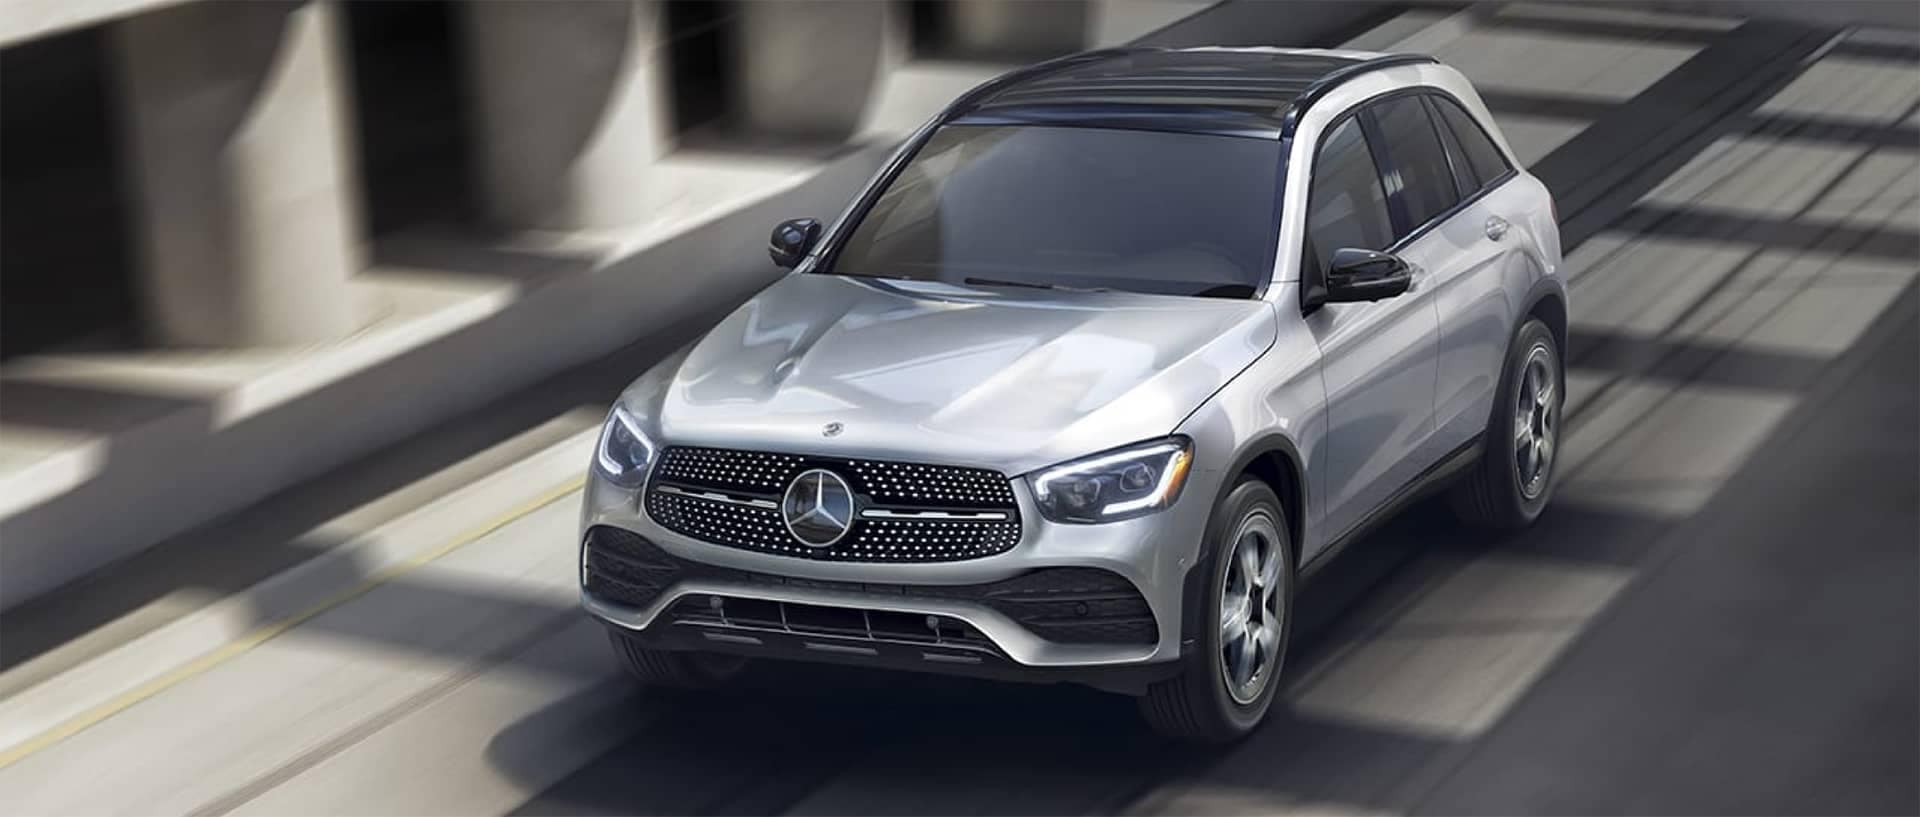 Mercedes-Benz SUV driving down road